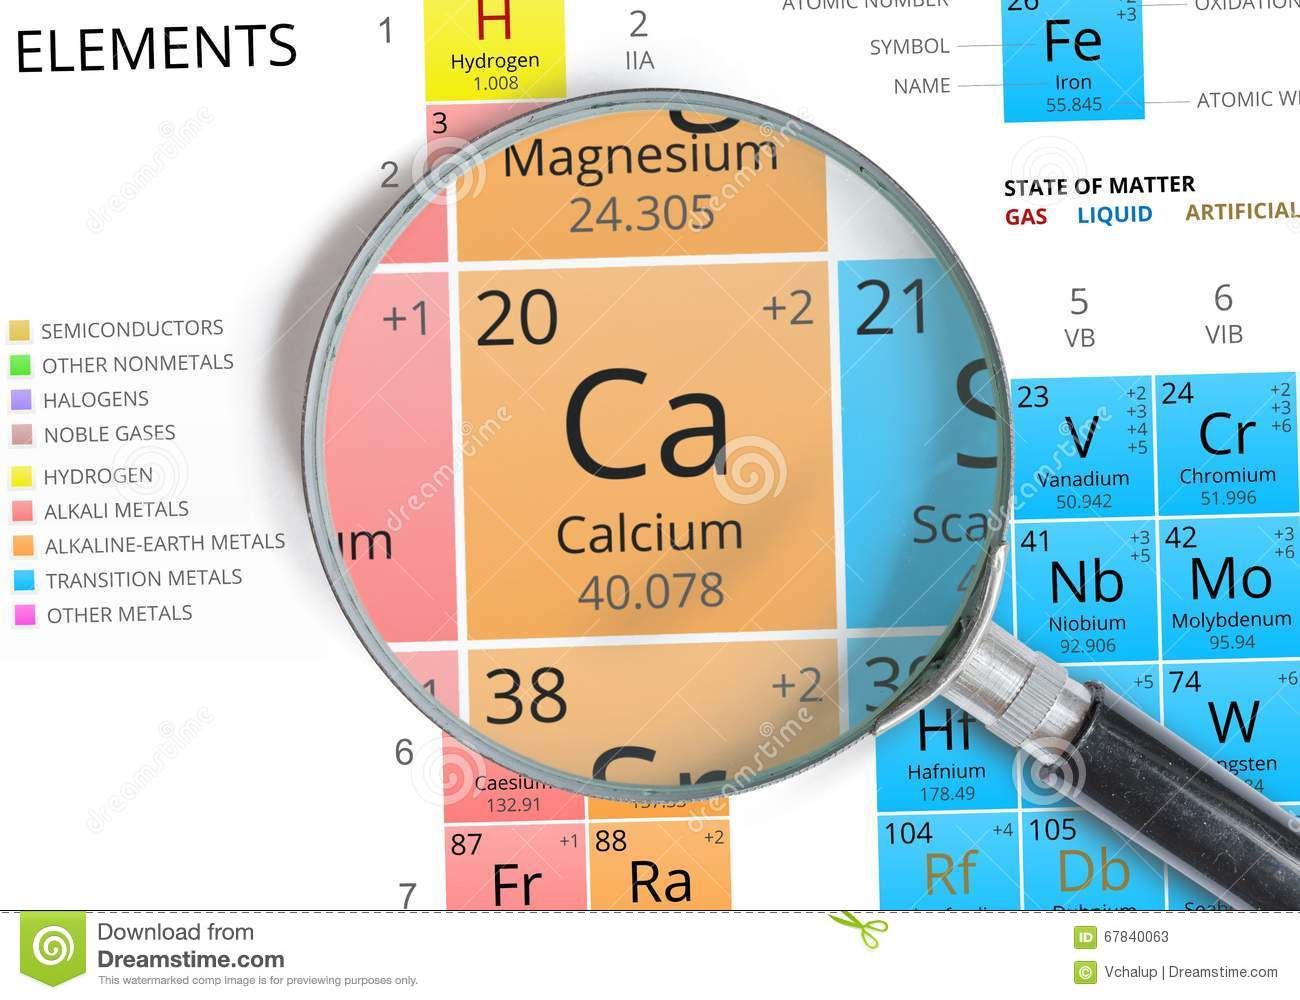 Calcium symbol ca element of the periodic table zoomed stock download calcium symbol ca element of the periodic table zoomed stock illustration illustration urtaz Gallery